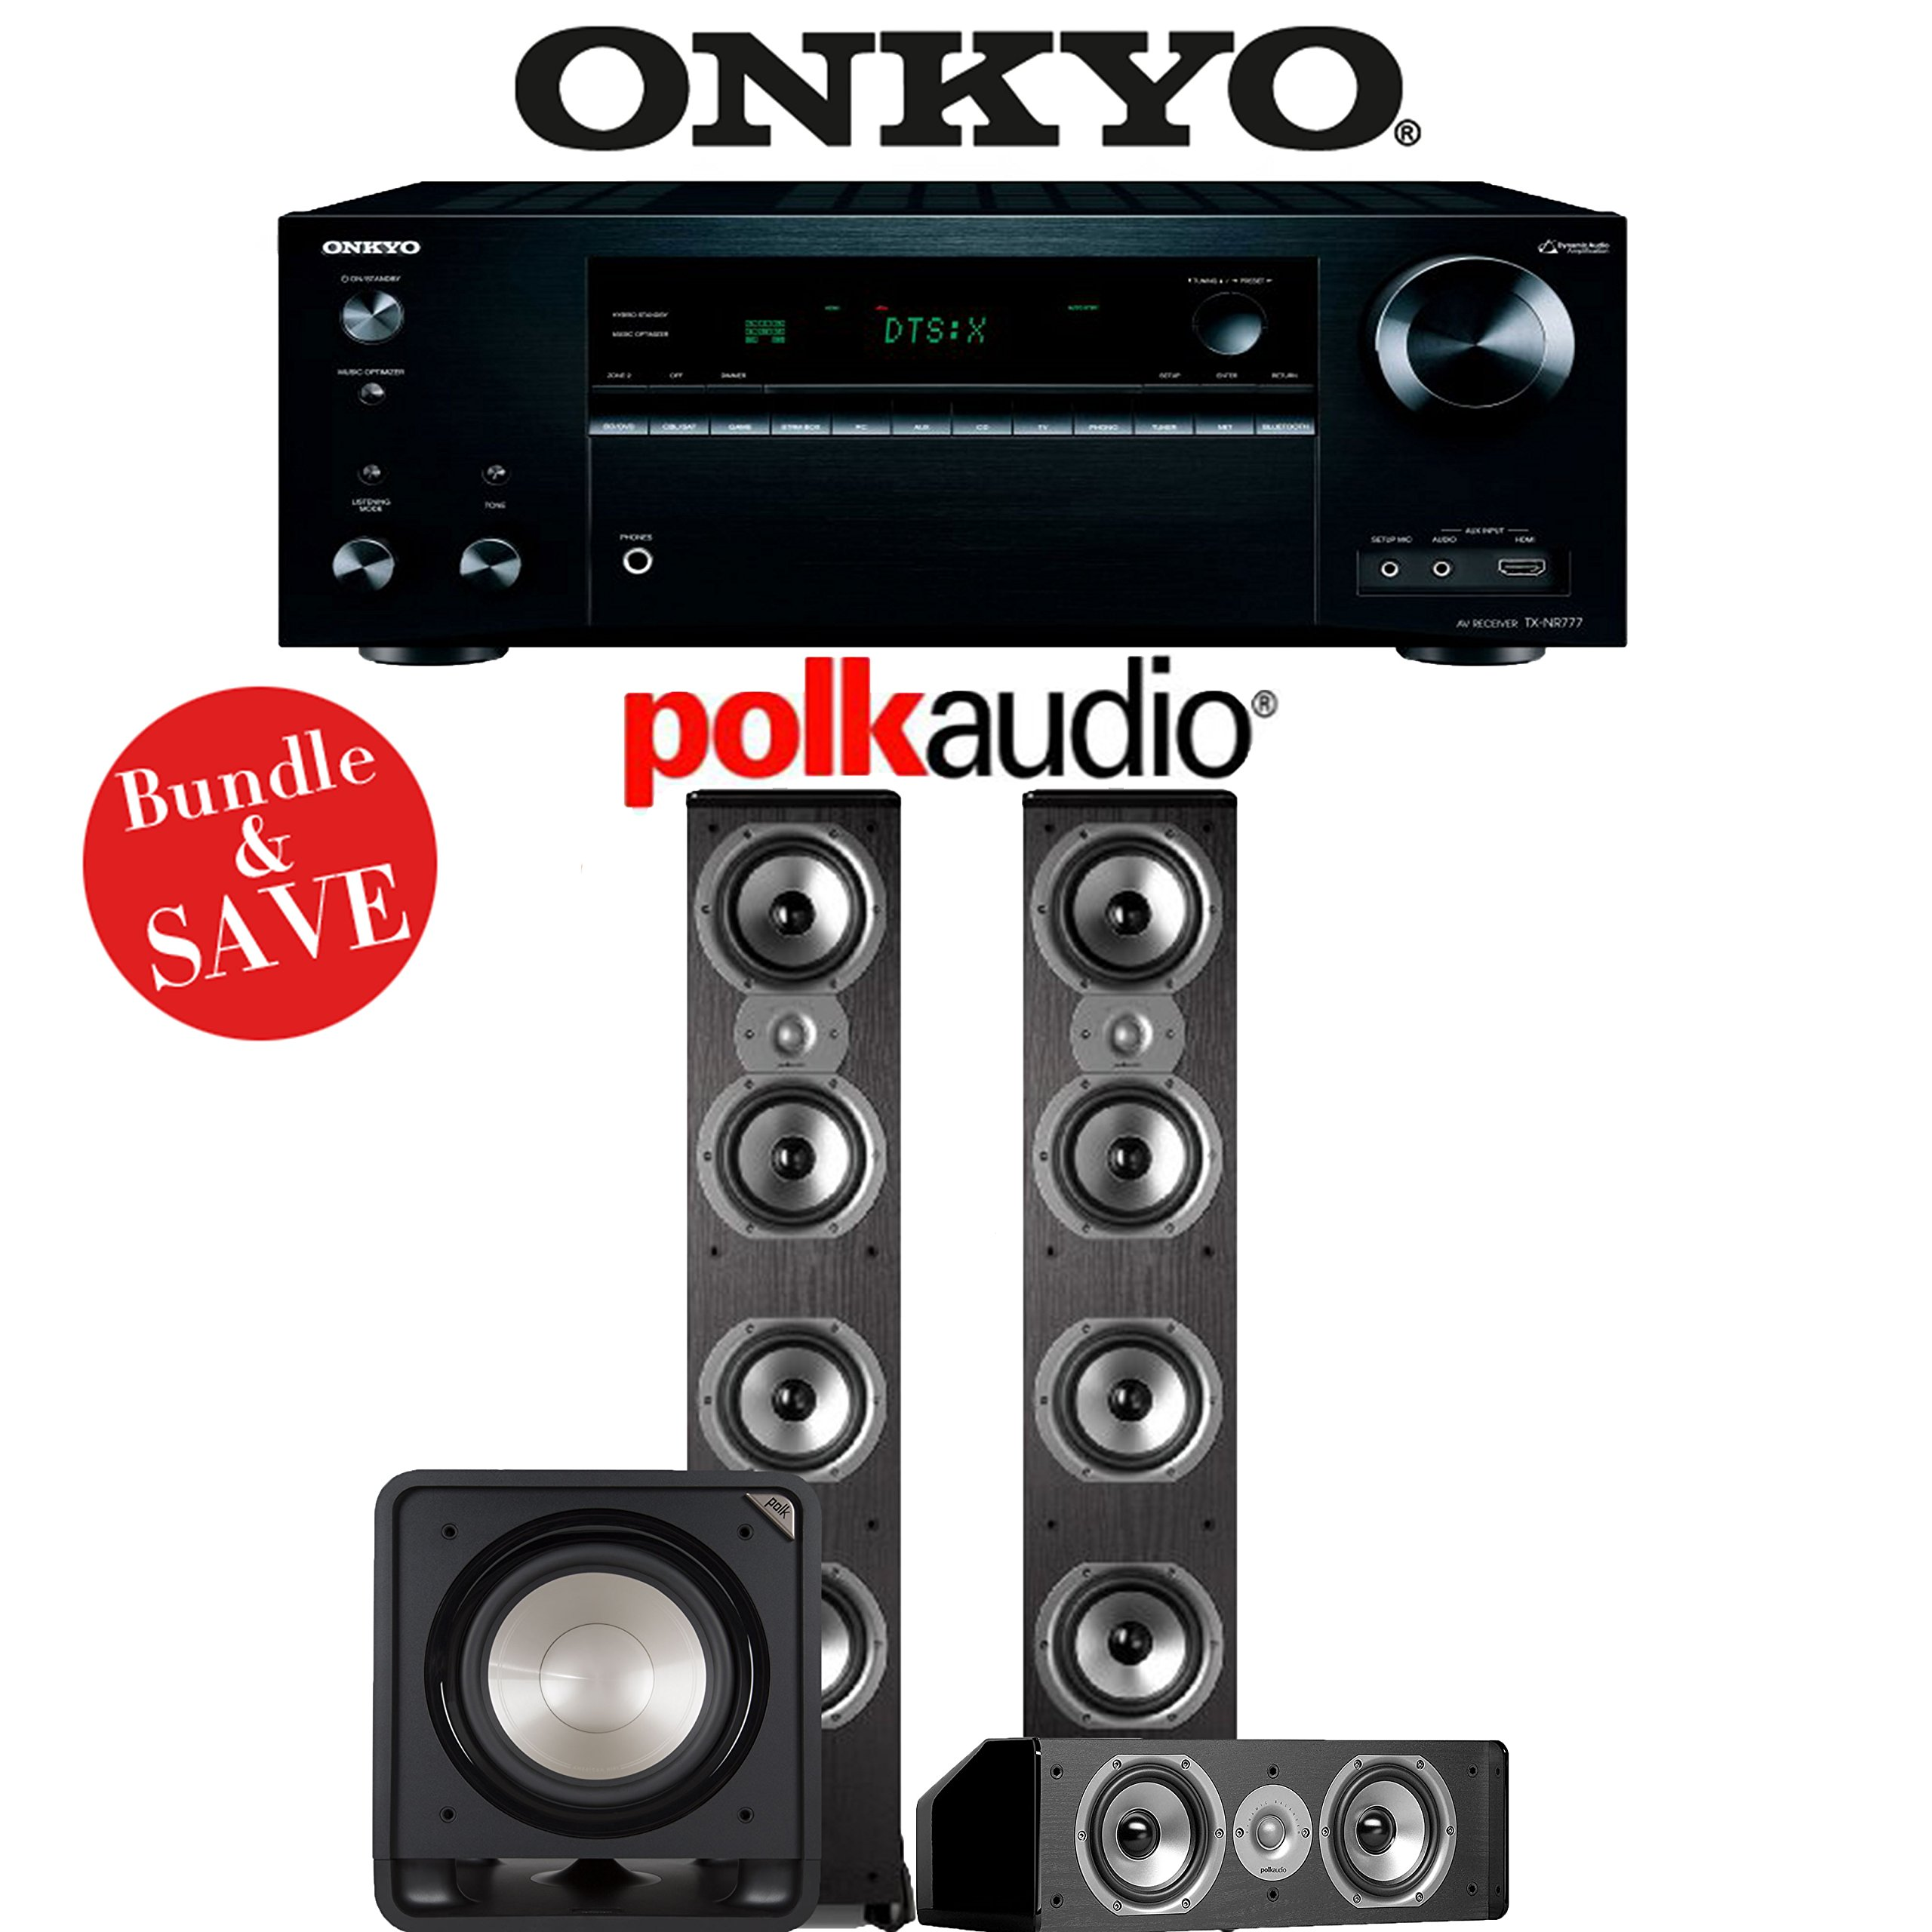 Onkyo TX-NR777 7.2-Channel 4K THX Certified Network A/V Receiver + Polk Audio TSi 500 + Polk Audio CS10 + Polk Audio HTS12 - 3.1-Ch Home Theater Package